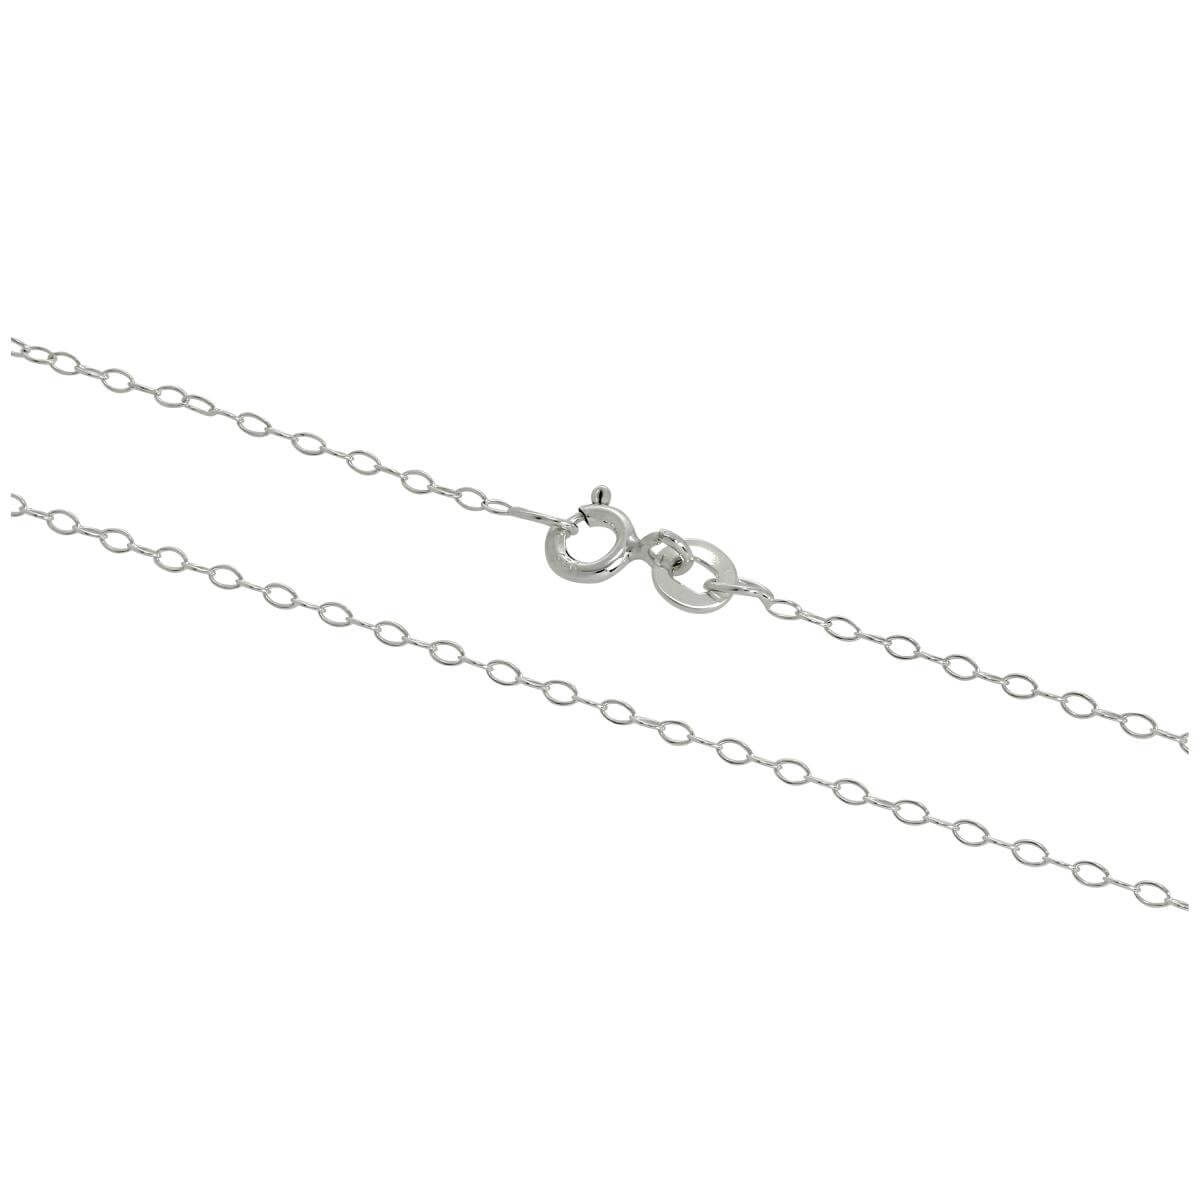 Sterling Silver Trace Chain 14 - 28 Inches